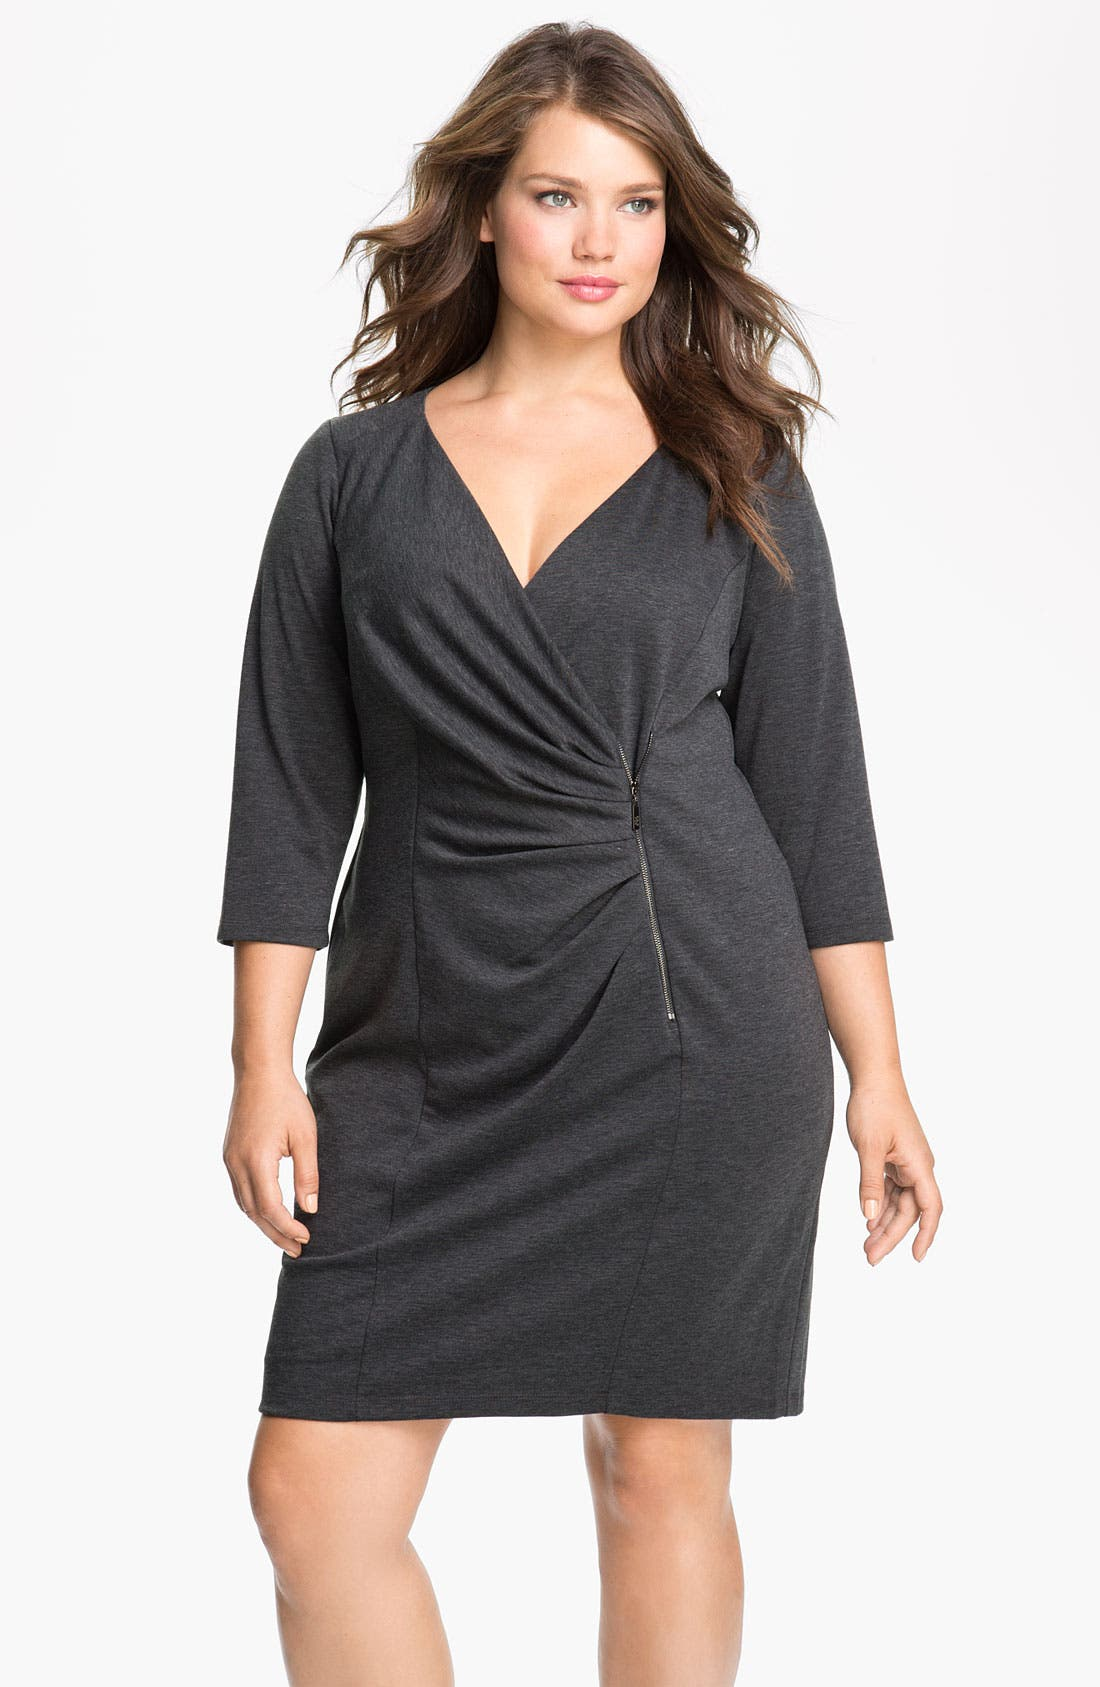 Alternate Image 1 Selected - Jessica Simpson Zipper Detail Ponte Knit Sheath Dress (Plus)